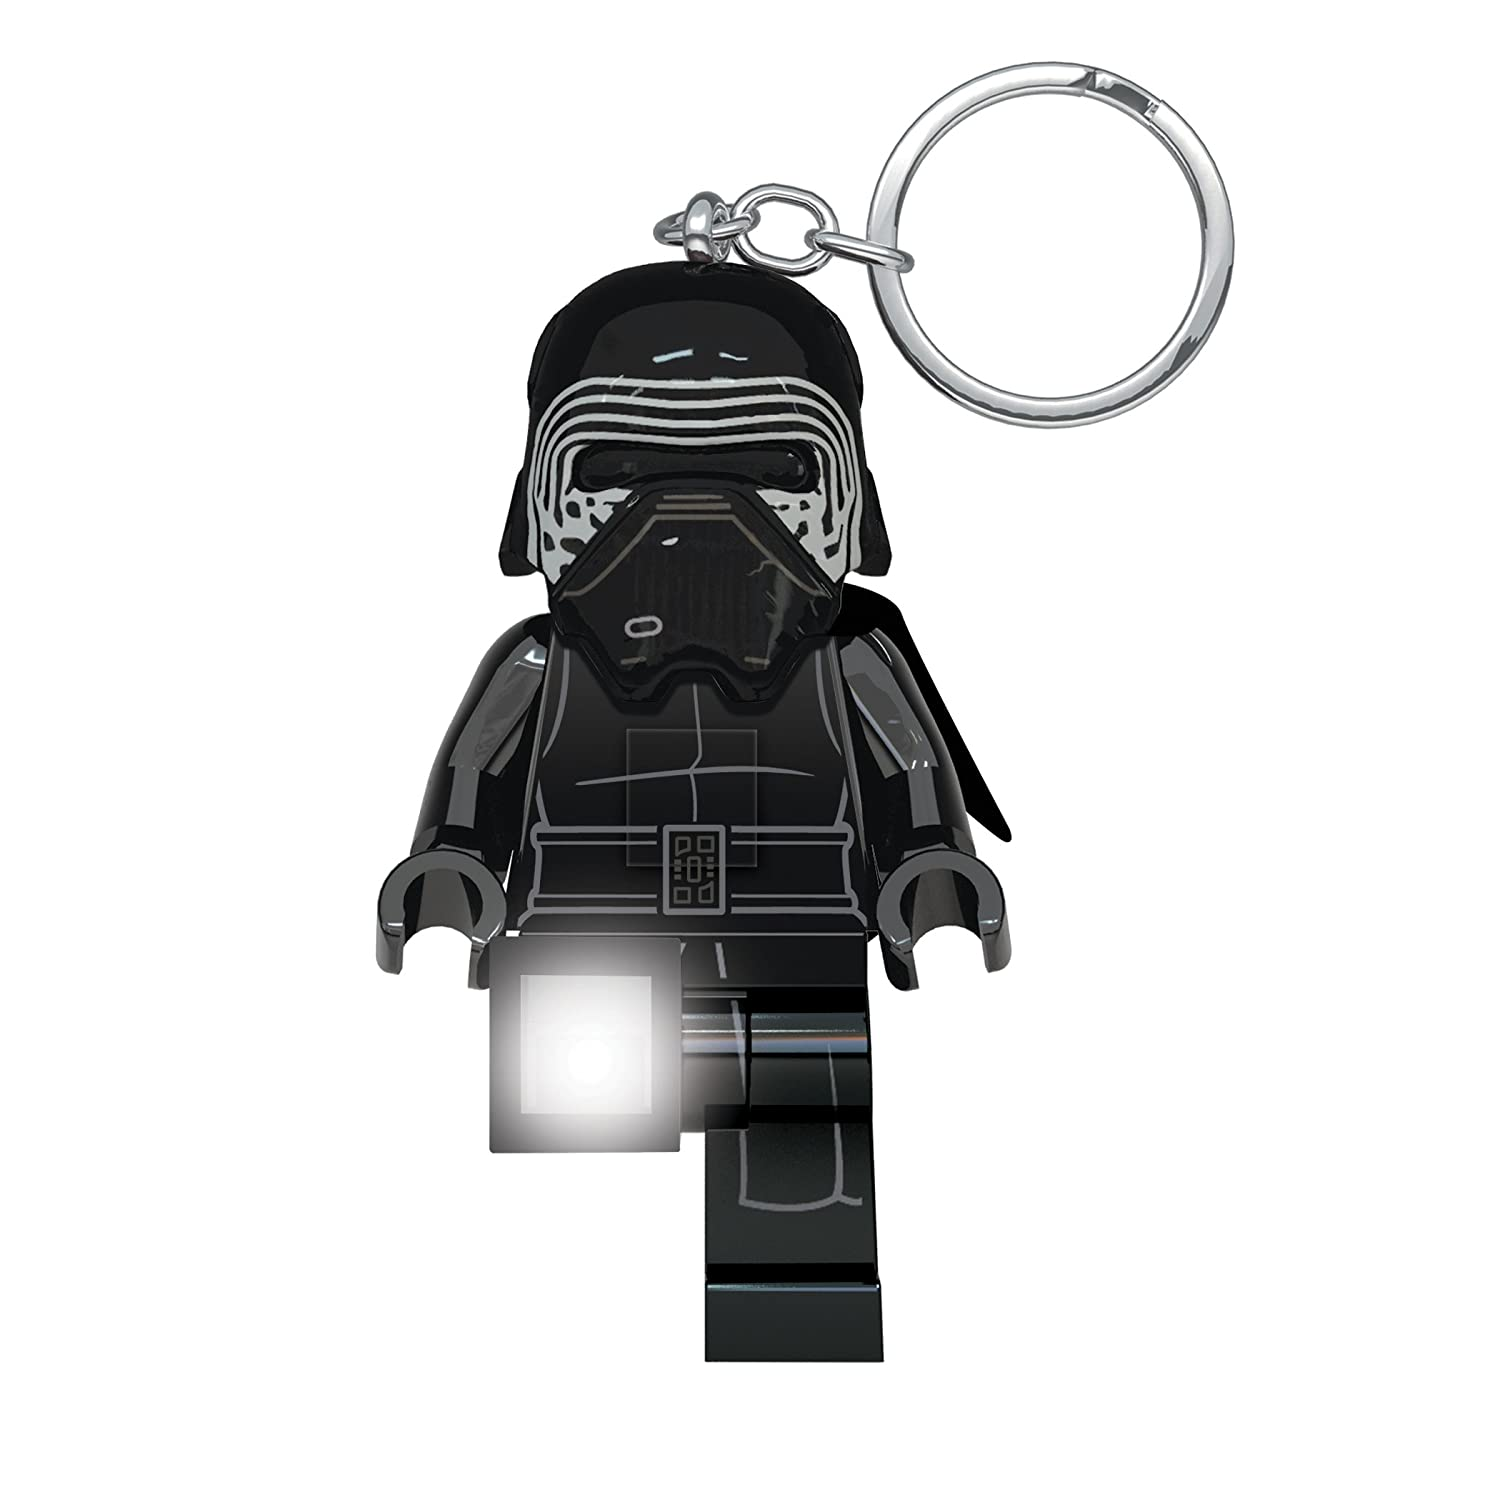 LEGO LED – LG0KE93 – Star Wars – Llavero LED Kylo REN